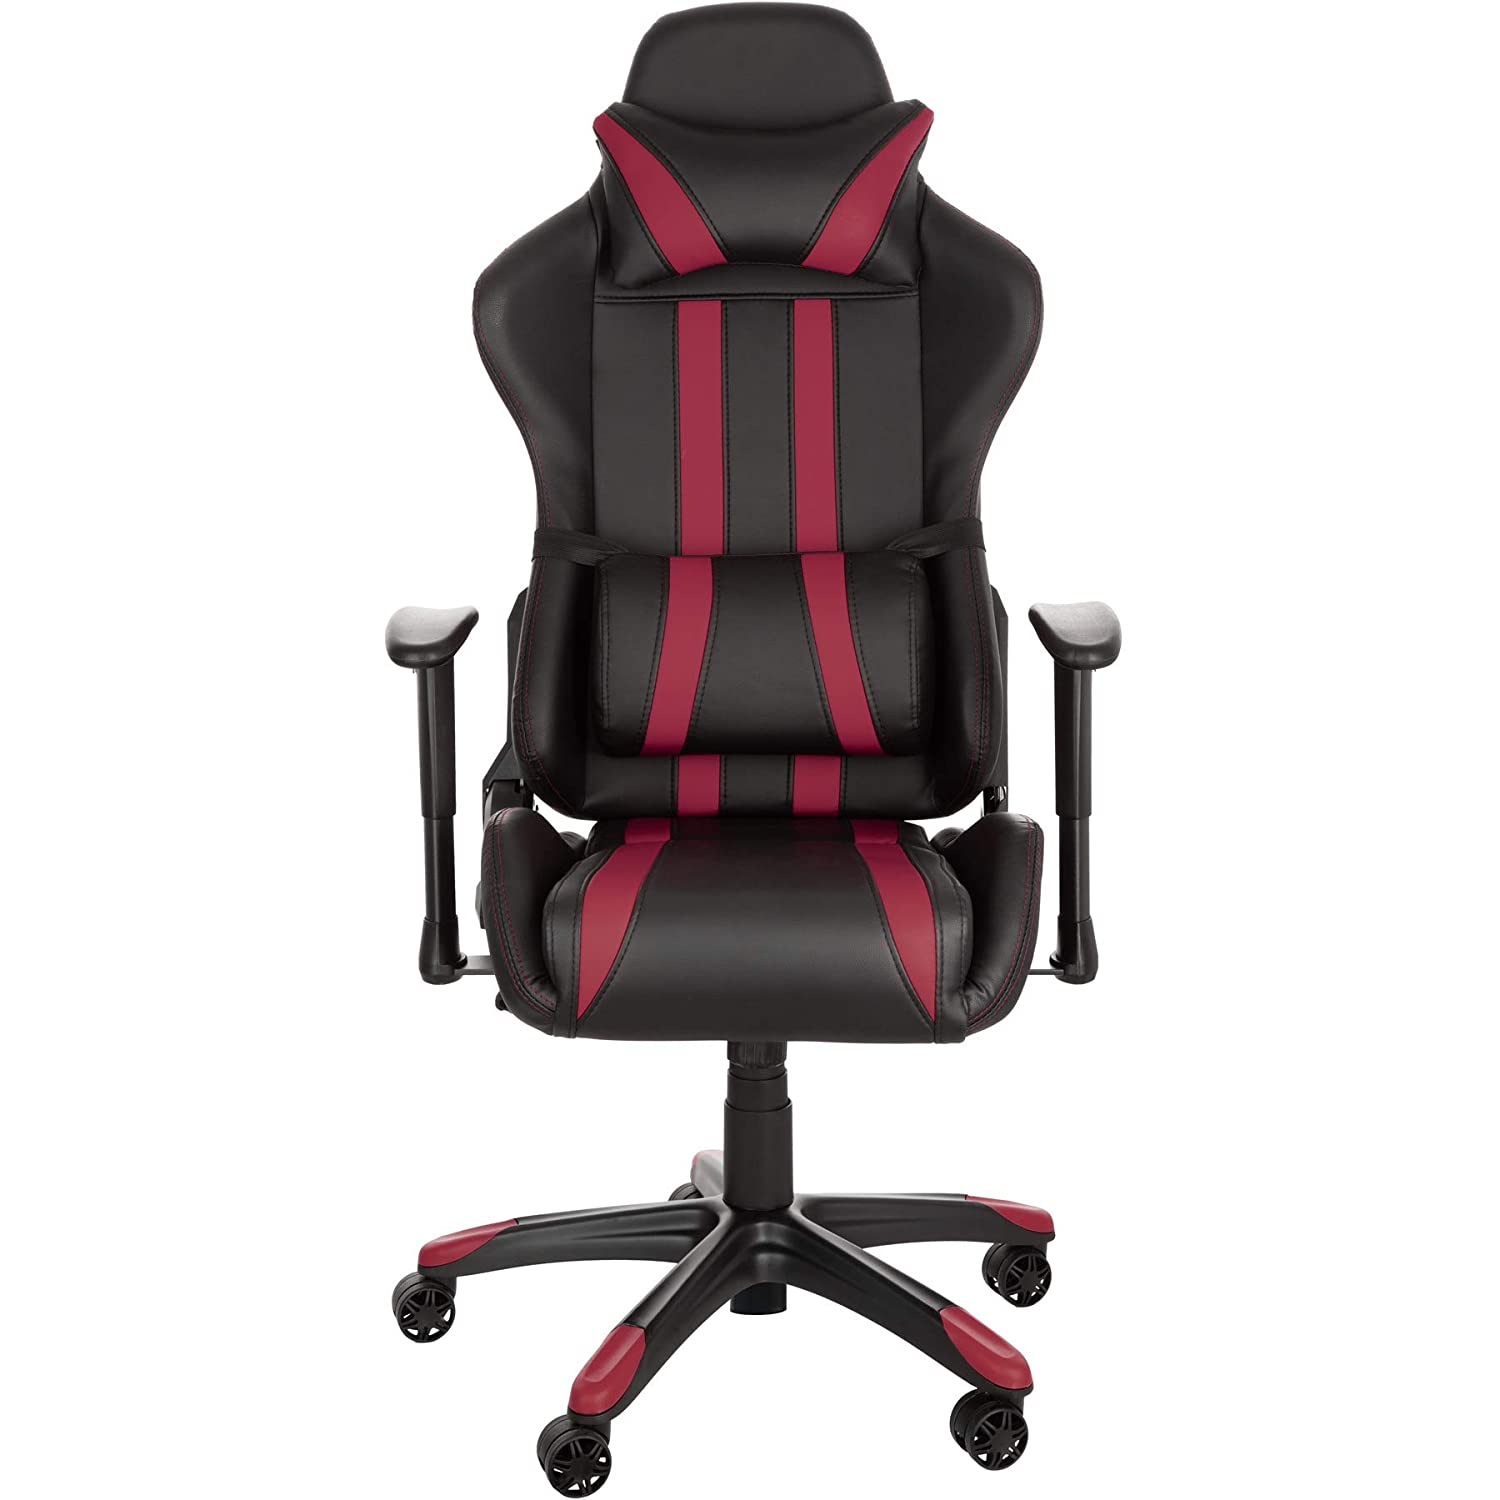 TecTake Silla de oficina ergonomica racing gaming con soporte lumbar - disponible en diferentes colores - (negro burdeos | no. 402232): Amazon.es: Hogar